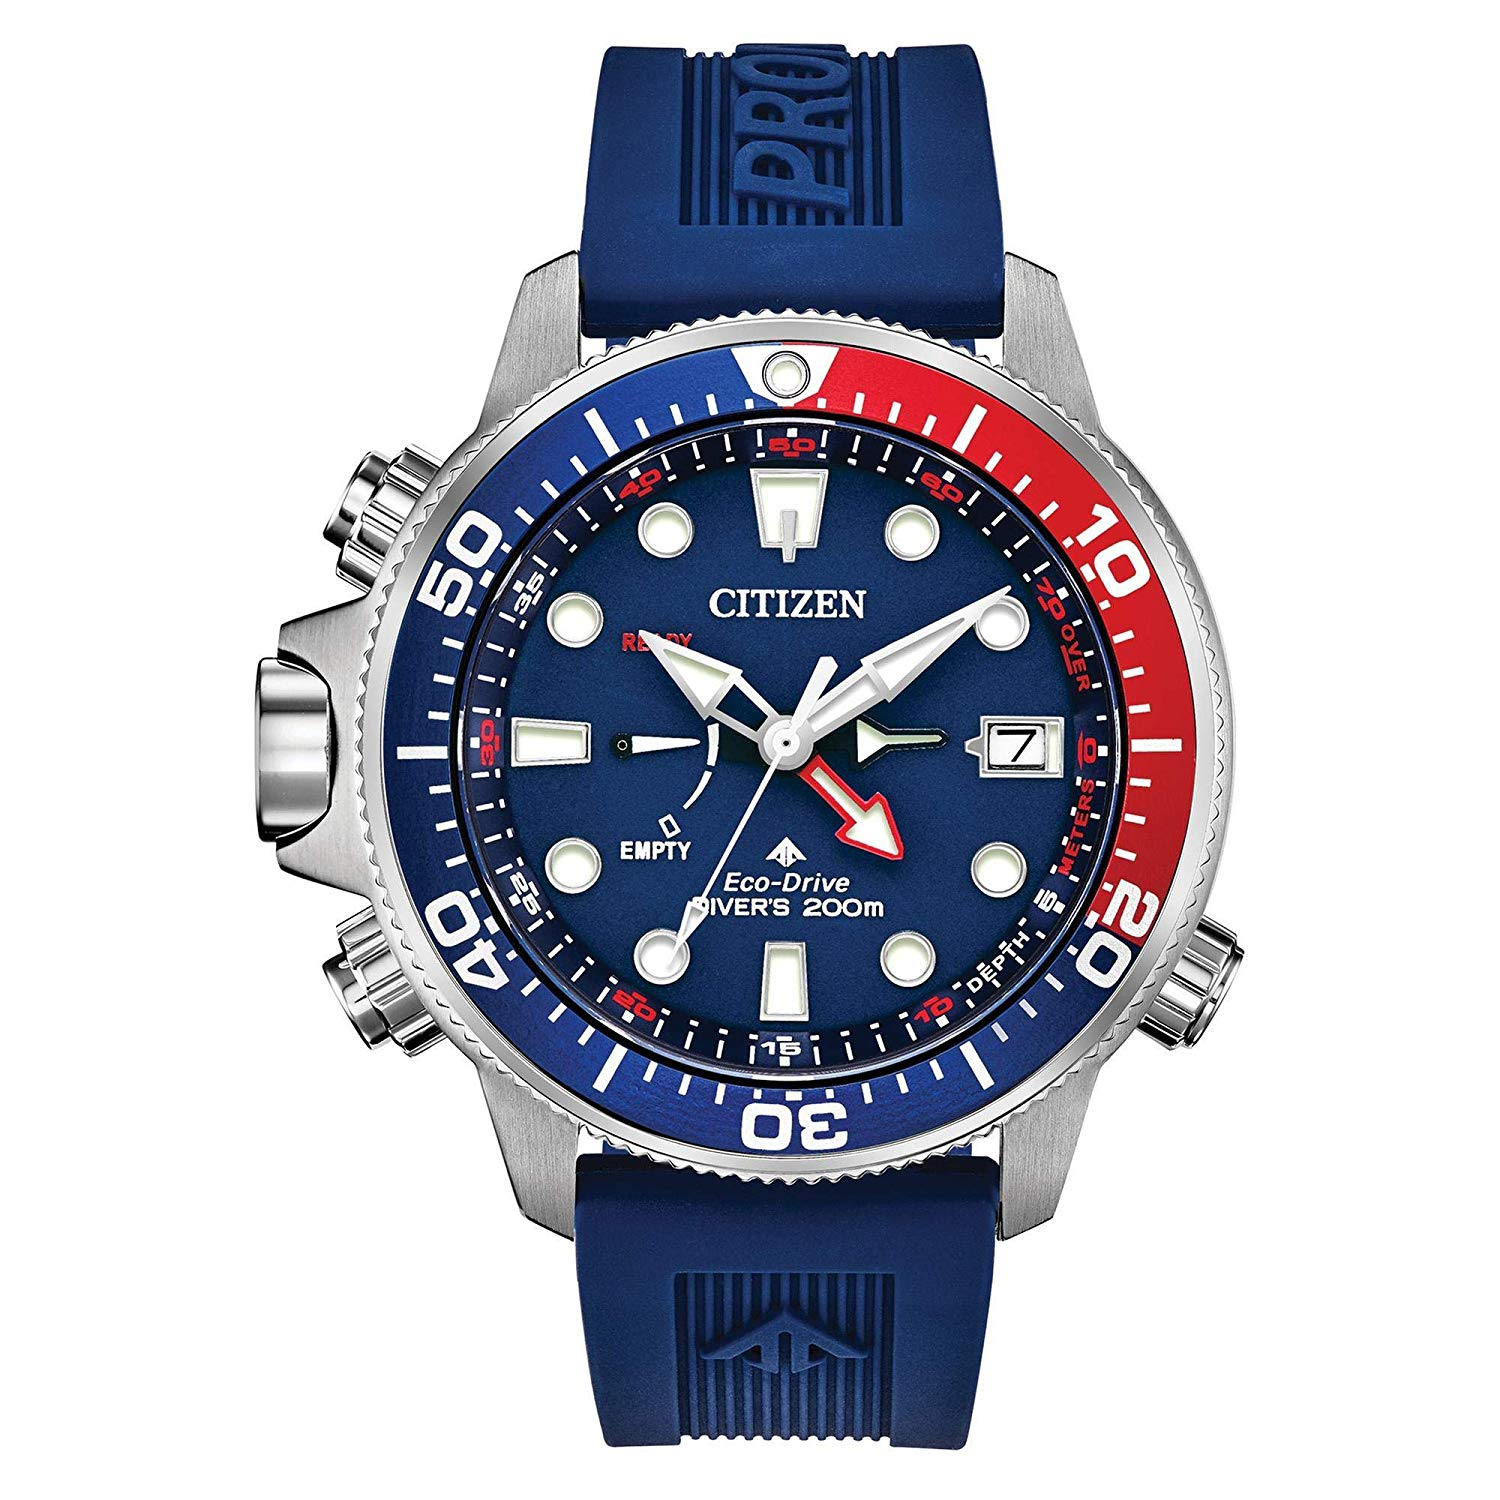 Citizen Promaster Aqualand Diver Watch with Blue Rubber Strap - BN2038-01L